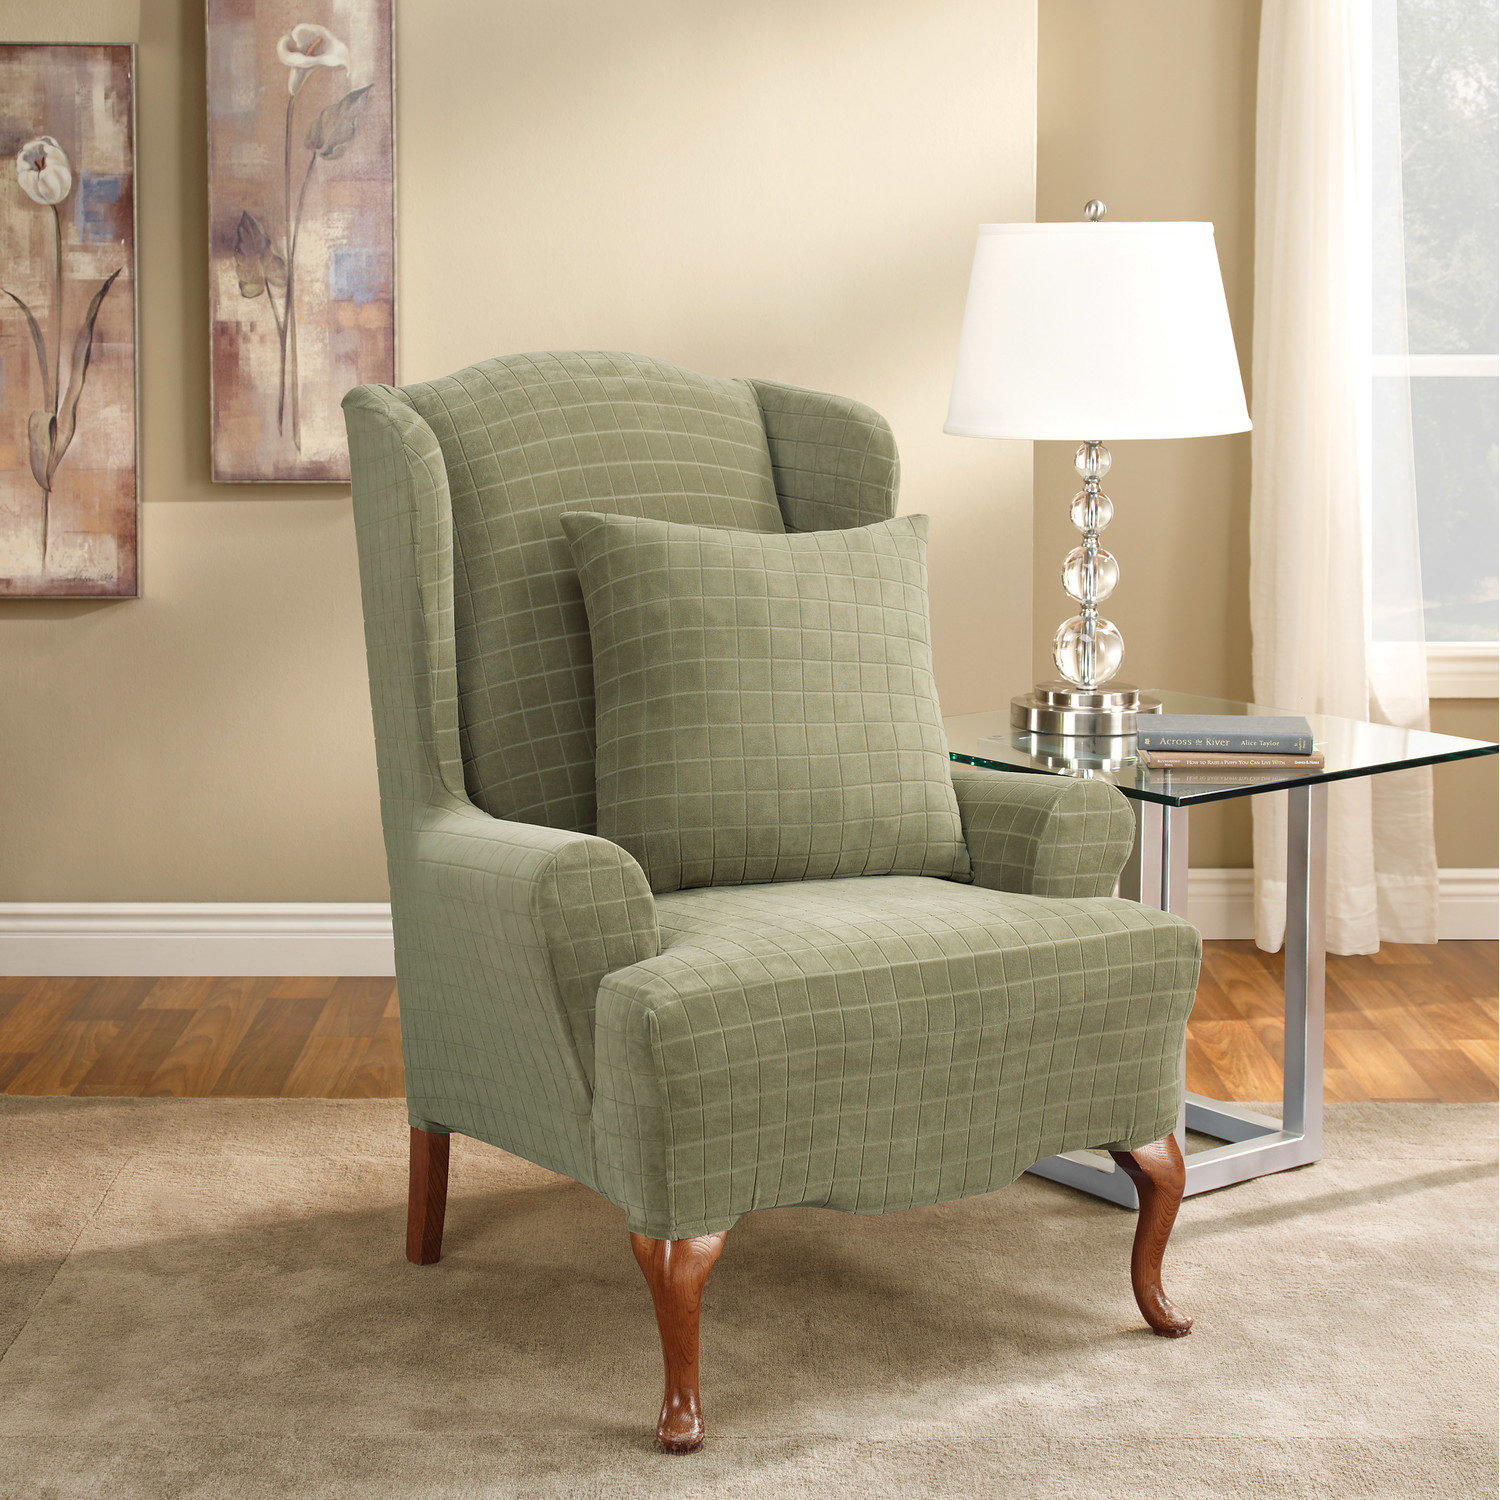 Soft Gree Wingback Chair Slipcover Design With Cushion And Glass Side Table  And White Crystal Table